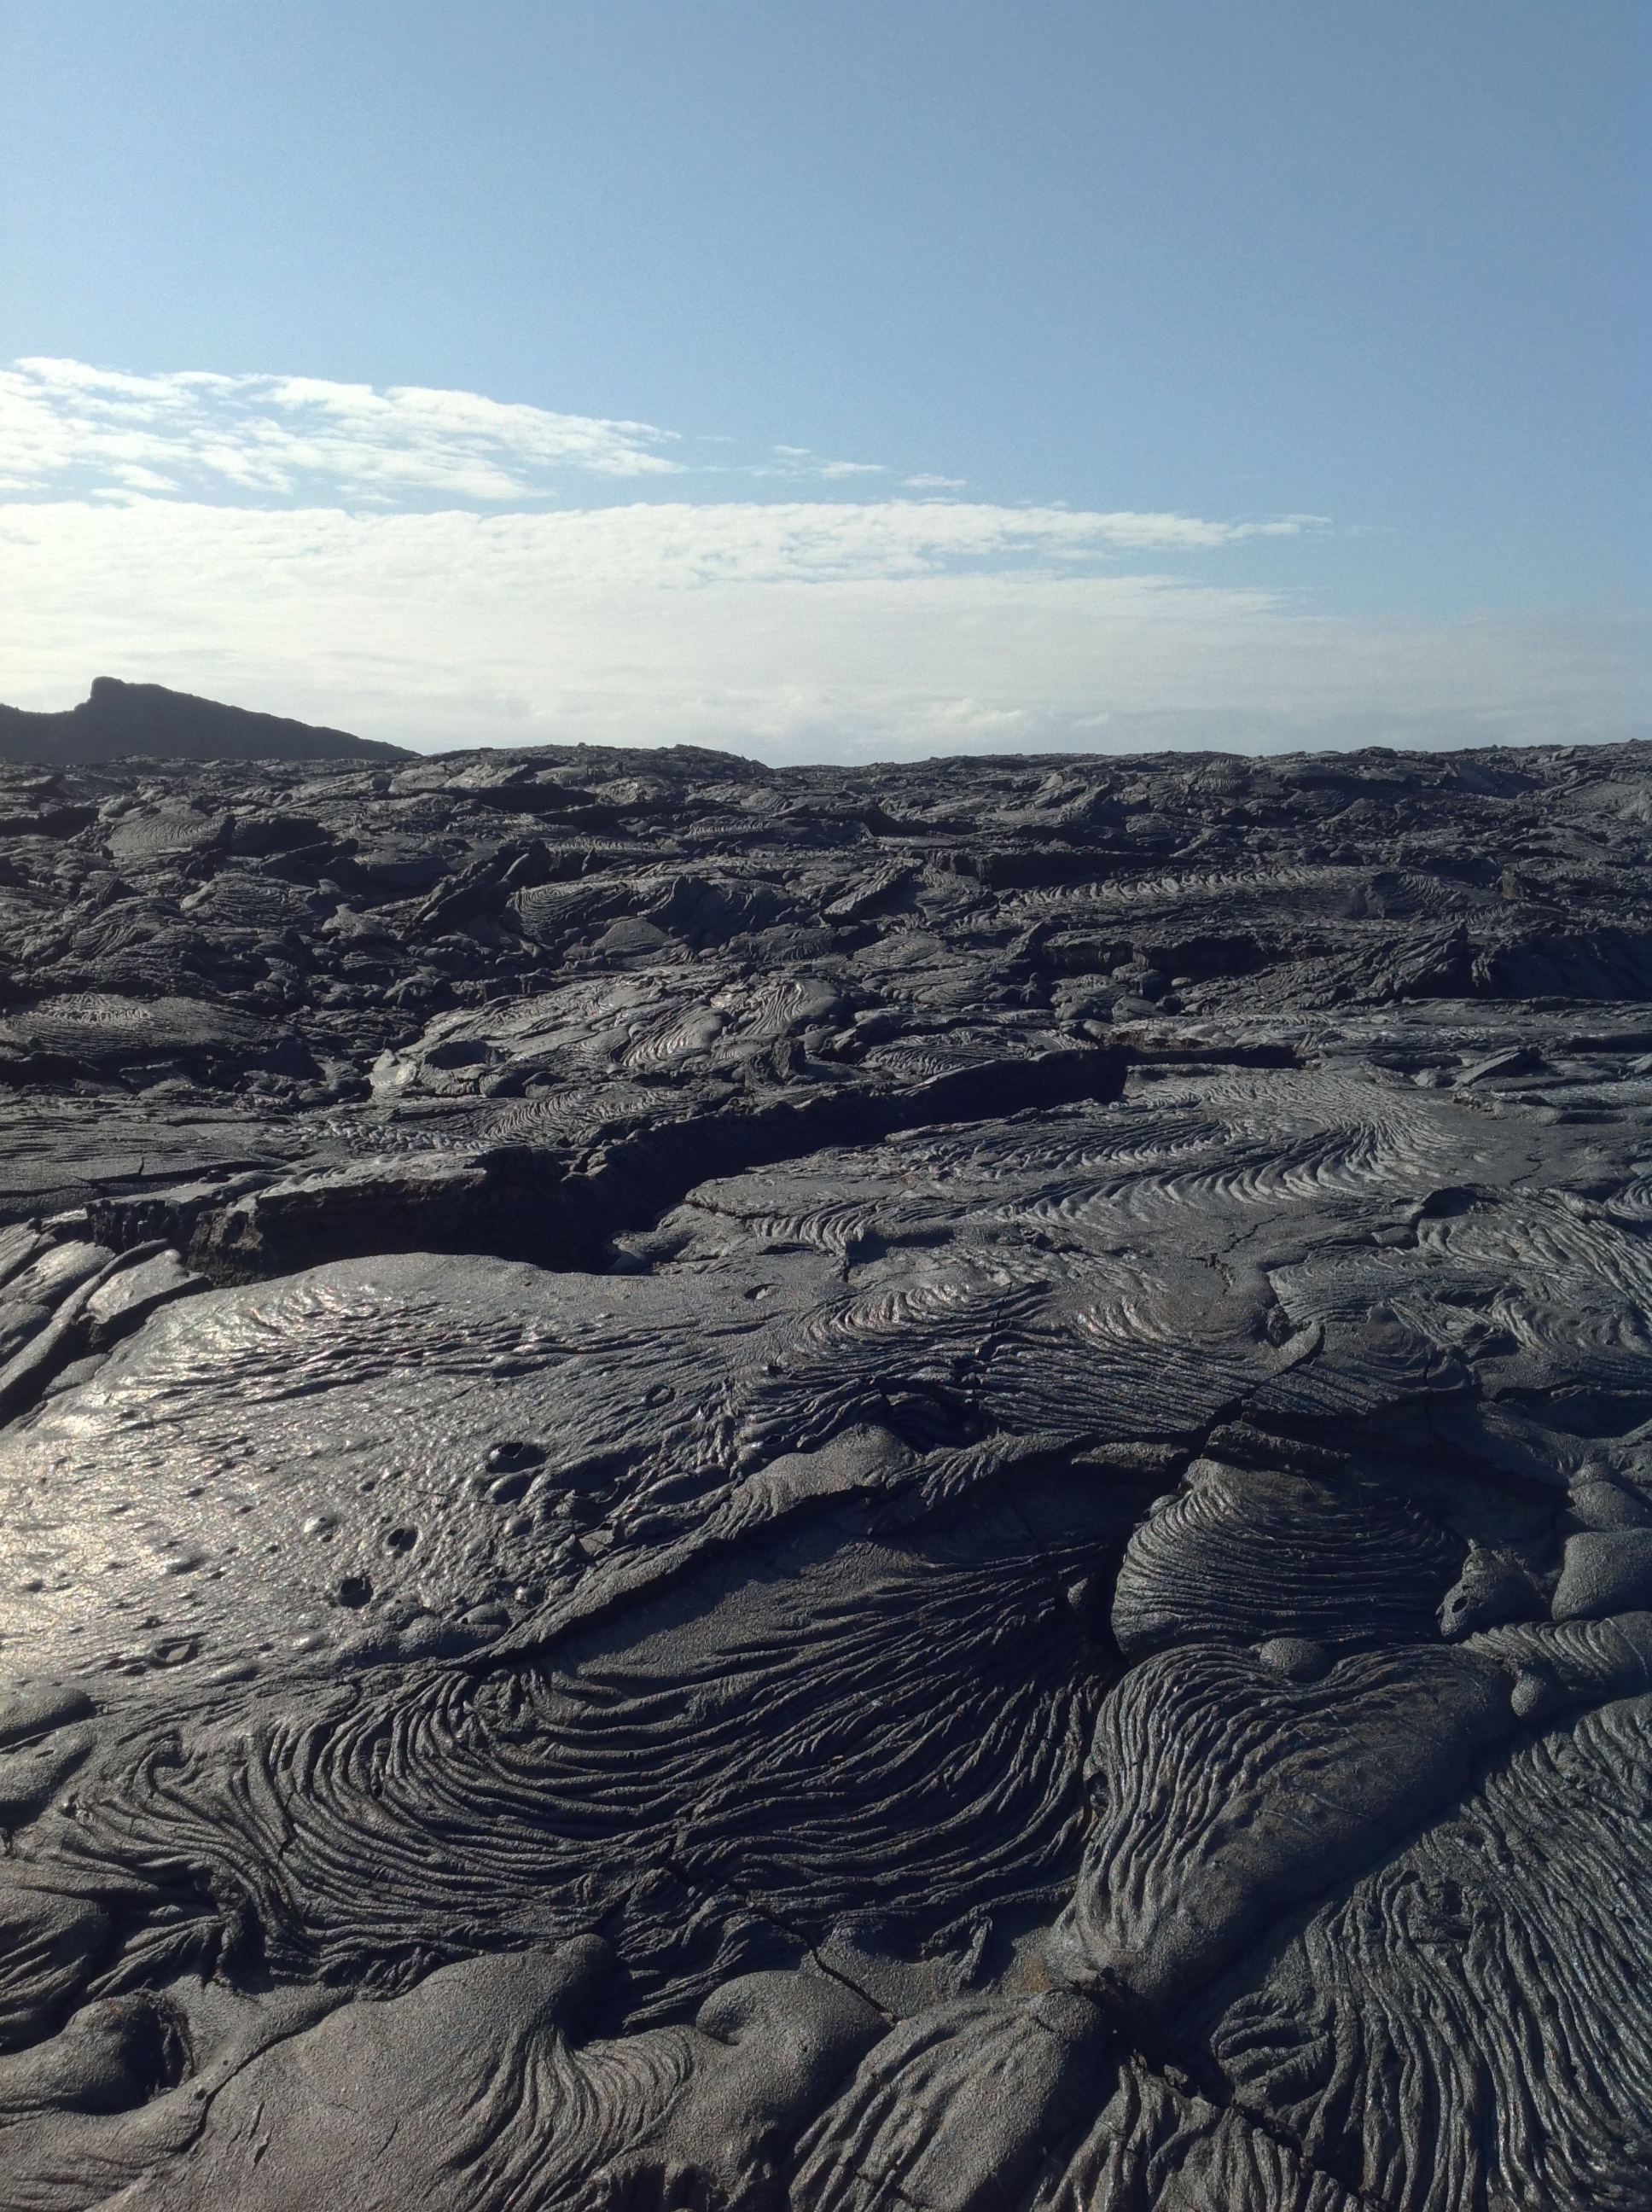 An expanse of hardened black lava.  It was like walking across natural sculptures, different patterns and artistic swirls in every direction.